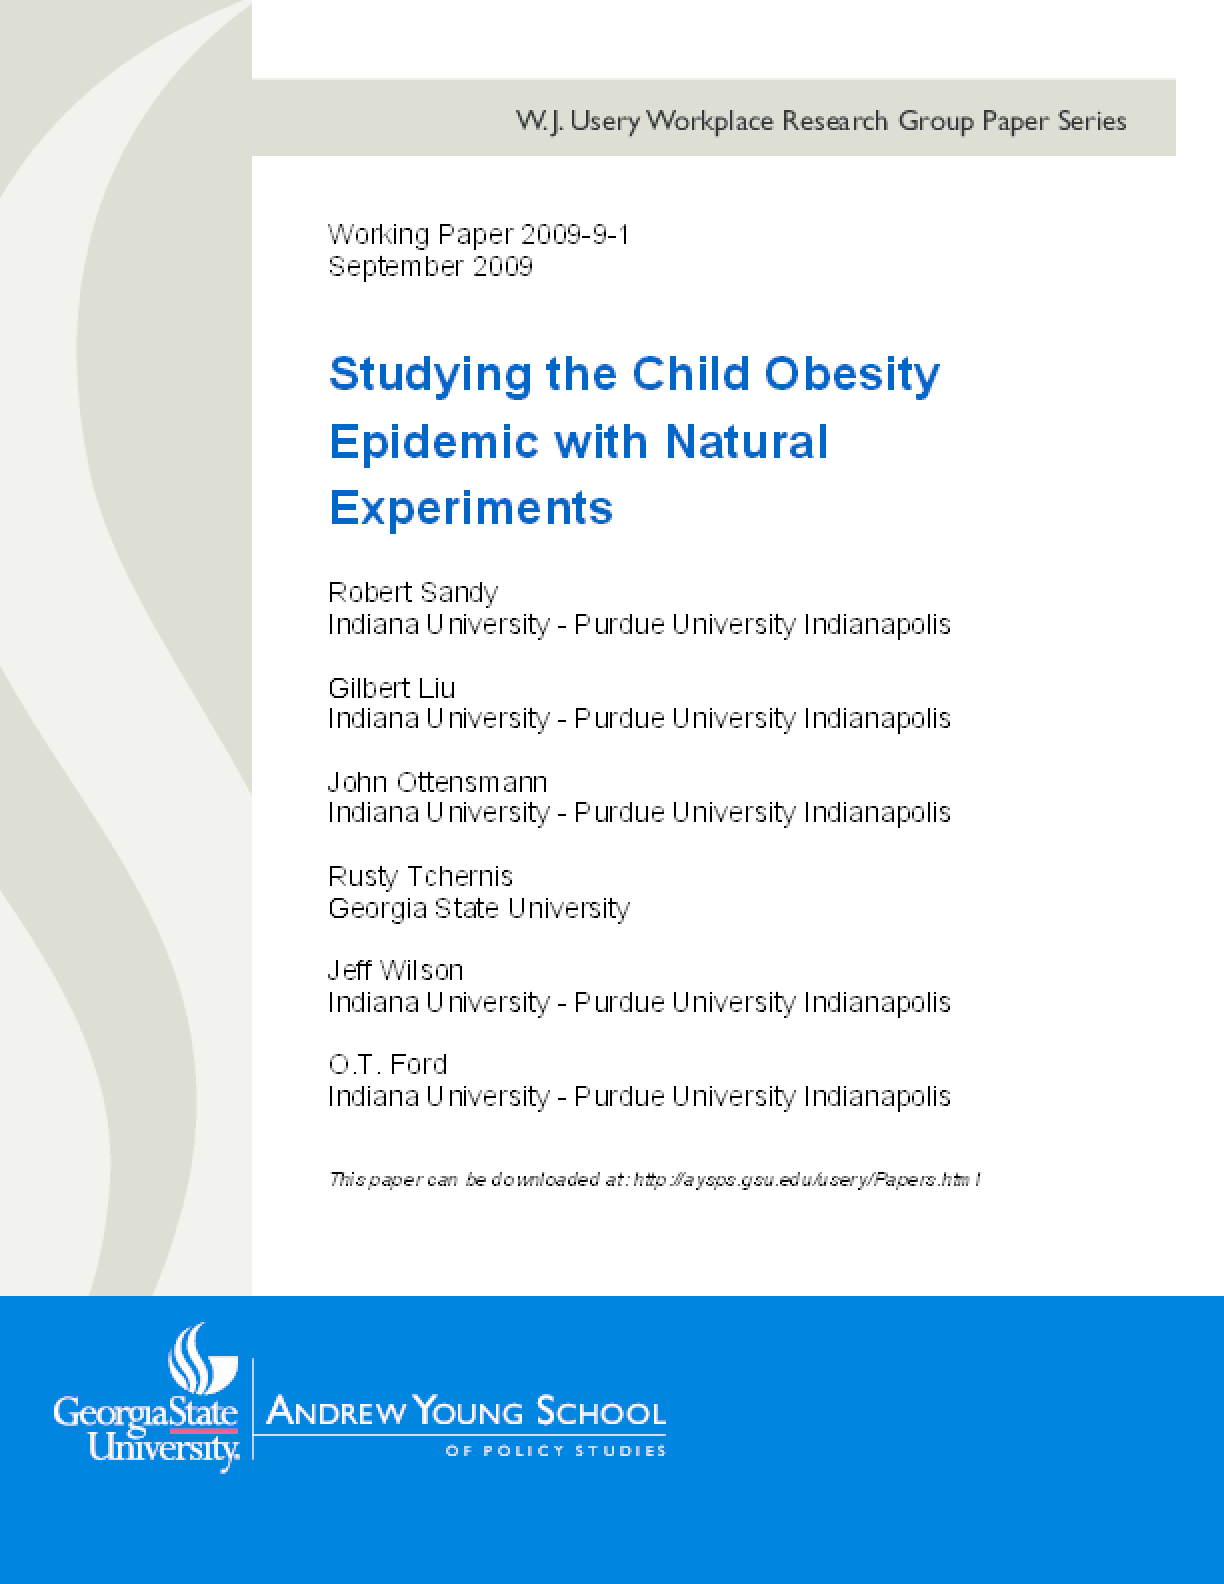 Studying the Child Obesity Epidemic with Natural Experiments